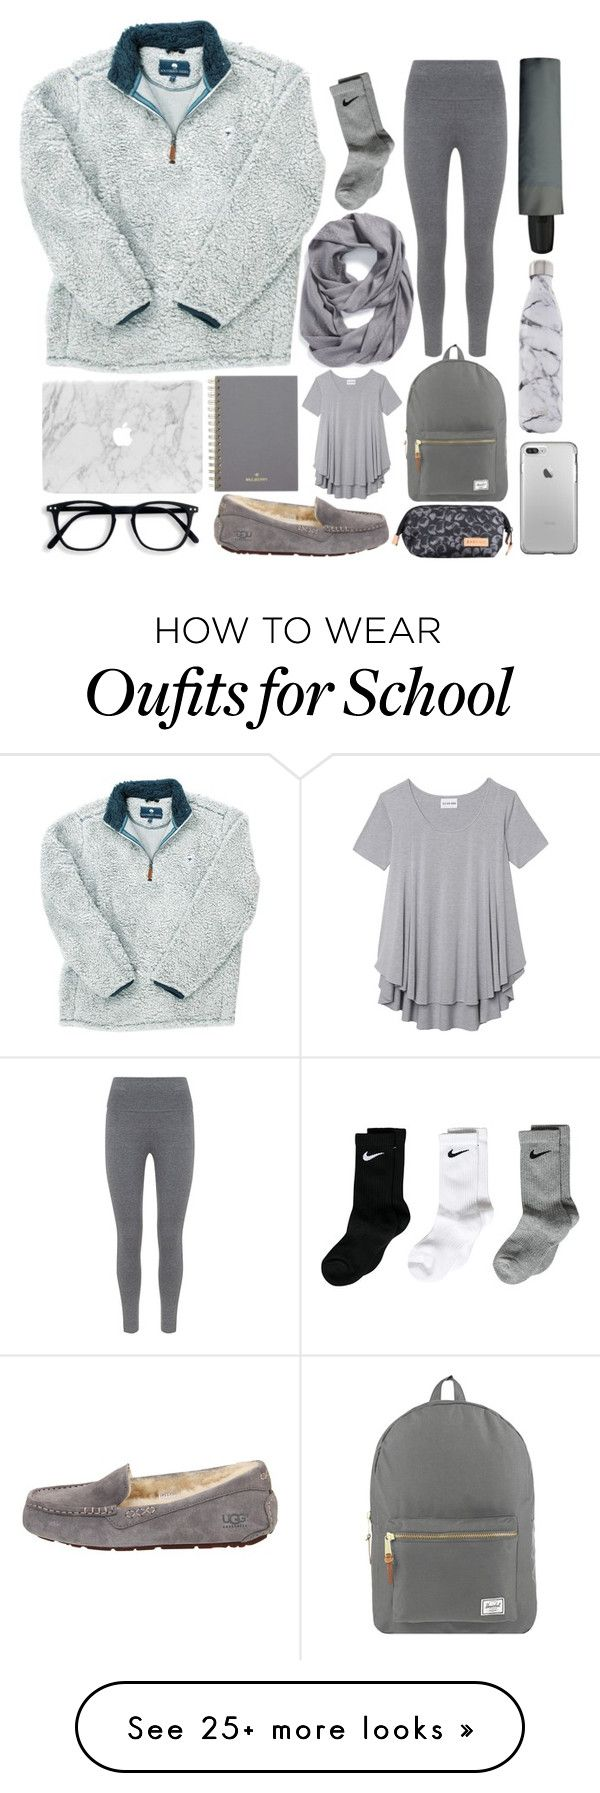 """""""School"""" by thesabriner on Polyvore featuring Mulberry, Tory Burch, Olive + Oak, NIKE, UGG Australia, Mint Velvet, Minimal, Herschel Supply Co., S'well and Eastpak"""